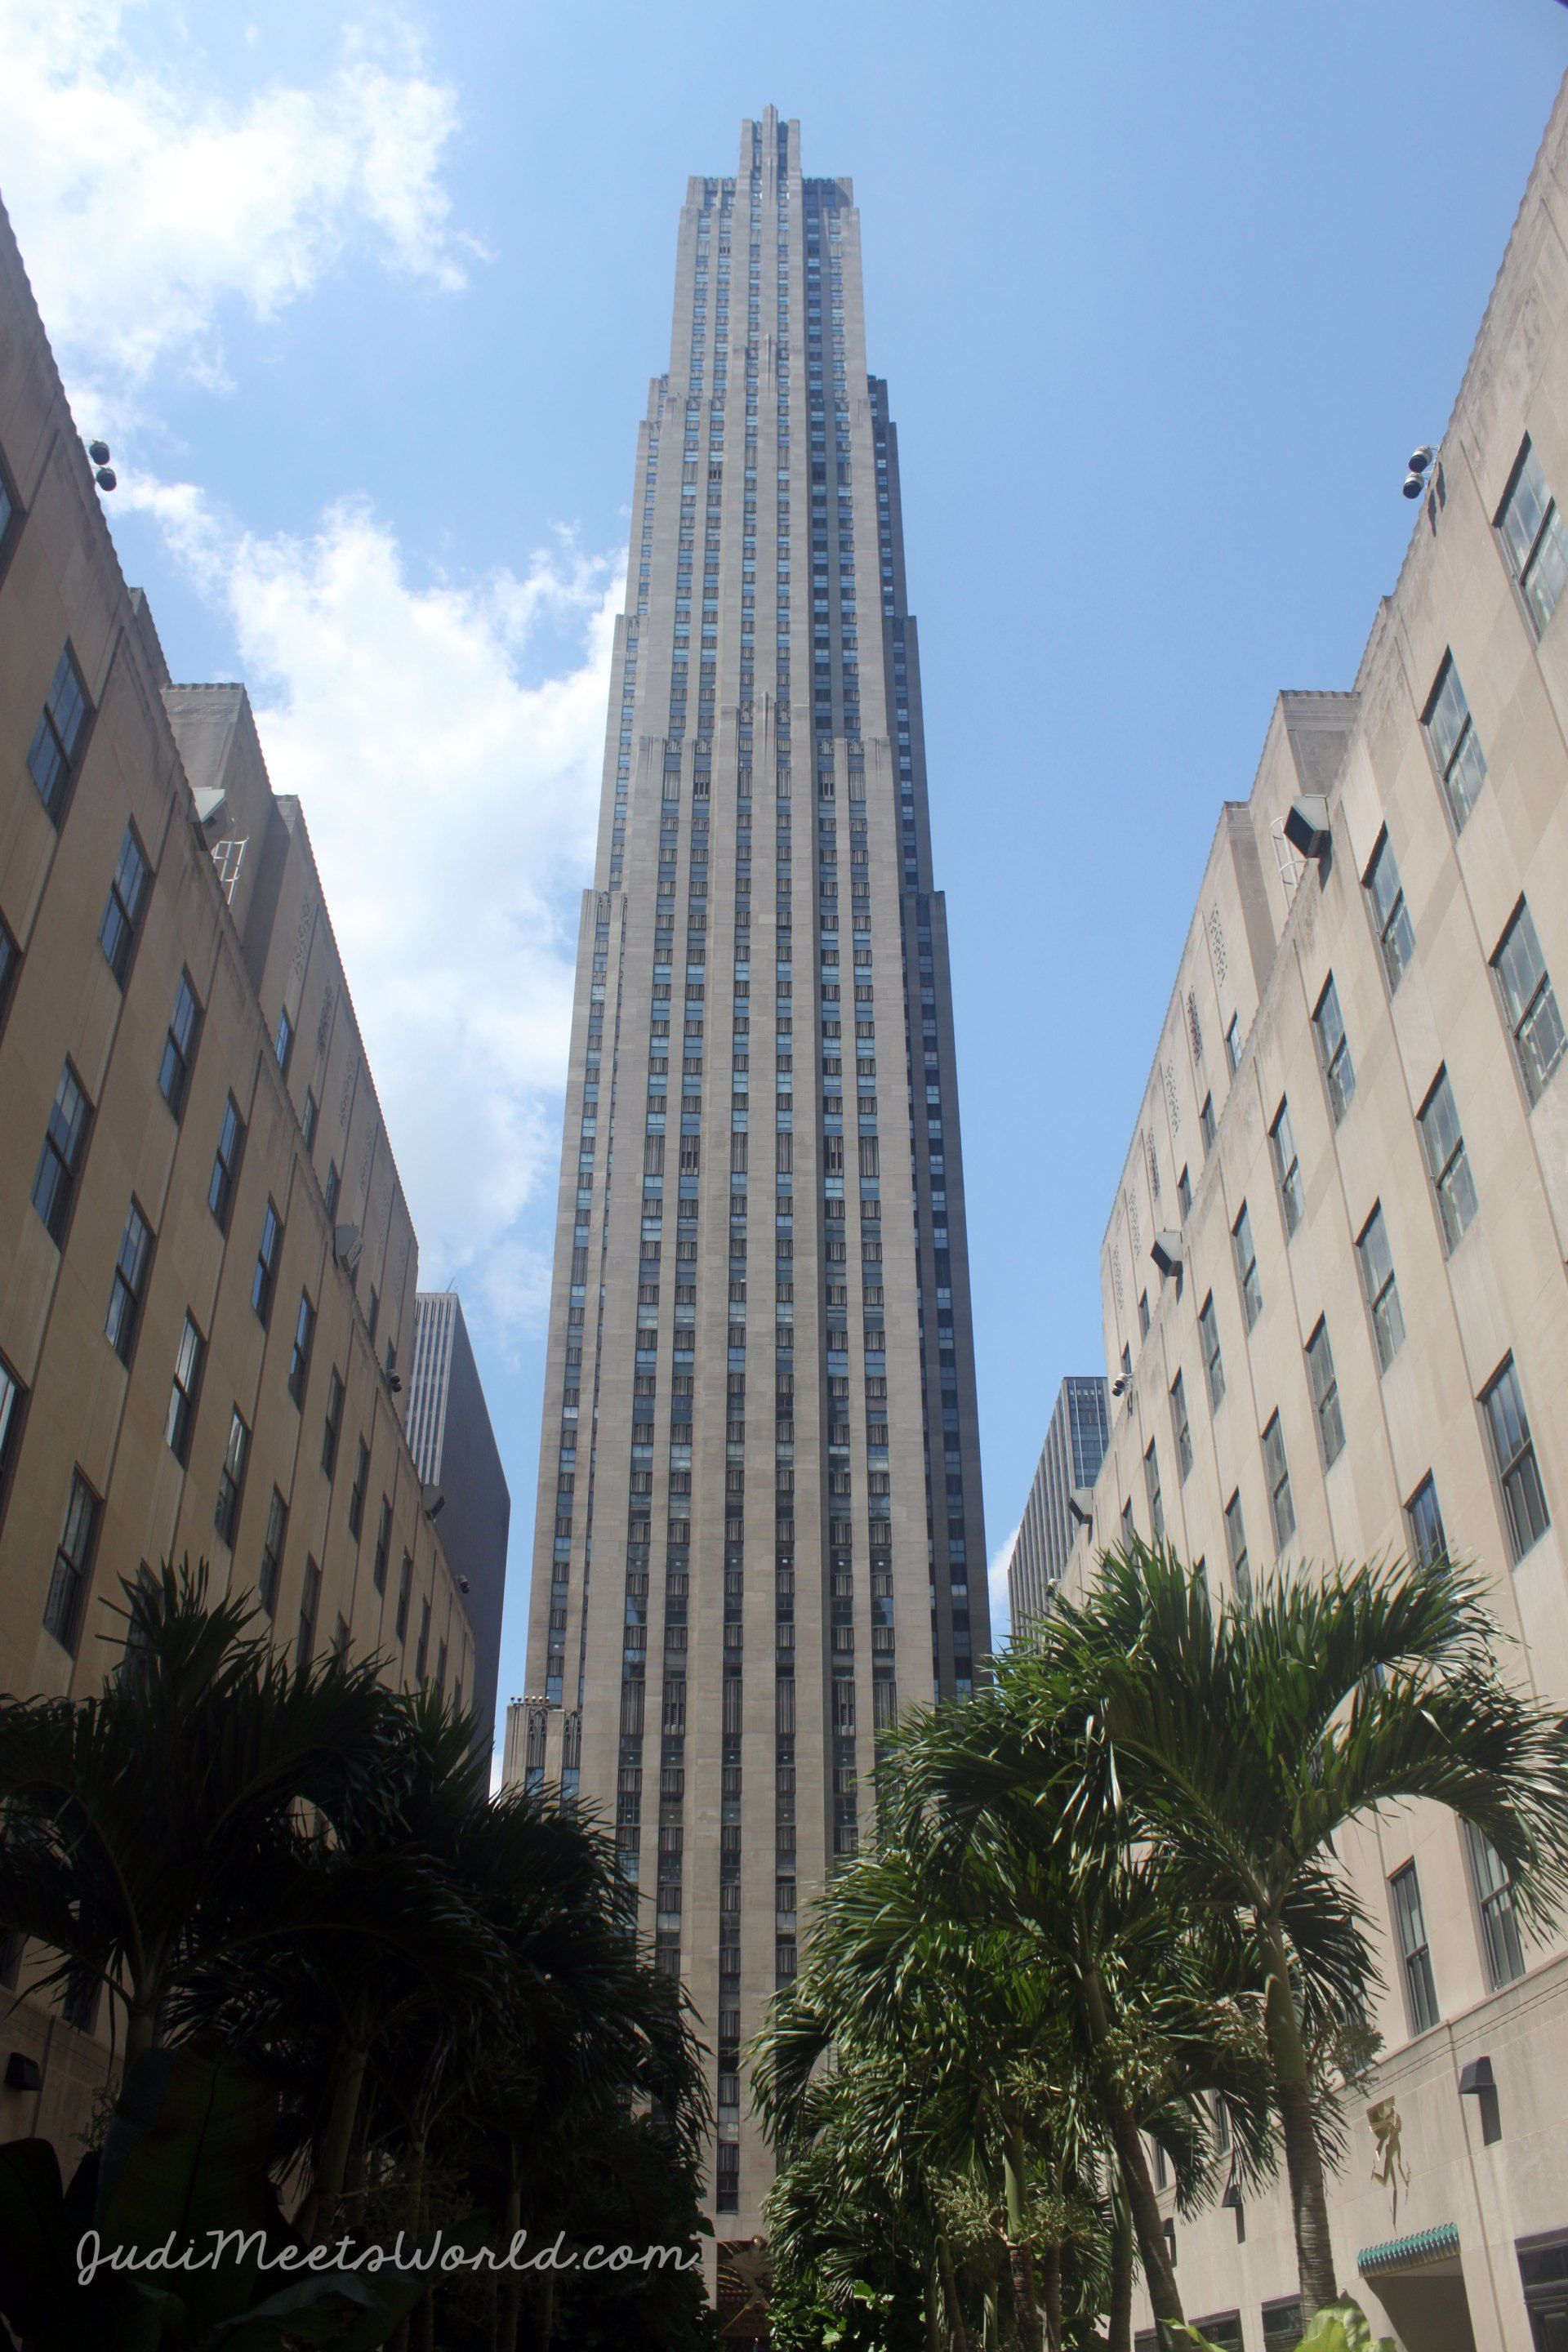 The Rockefeller Center is famous in winter for its ice skating and Christmas tree - see what it's like in the summer, and take a stroll down 6 1/2 Ave!  --->>  judimeetsworld.com  --->>  #NYC #RockefellerCenter #NewYork #Manhattan #uptown #30Rock #NewYorkCity #wanderlust #skyscraper #cityscape